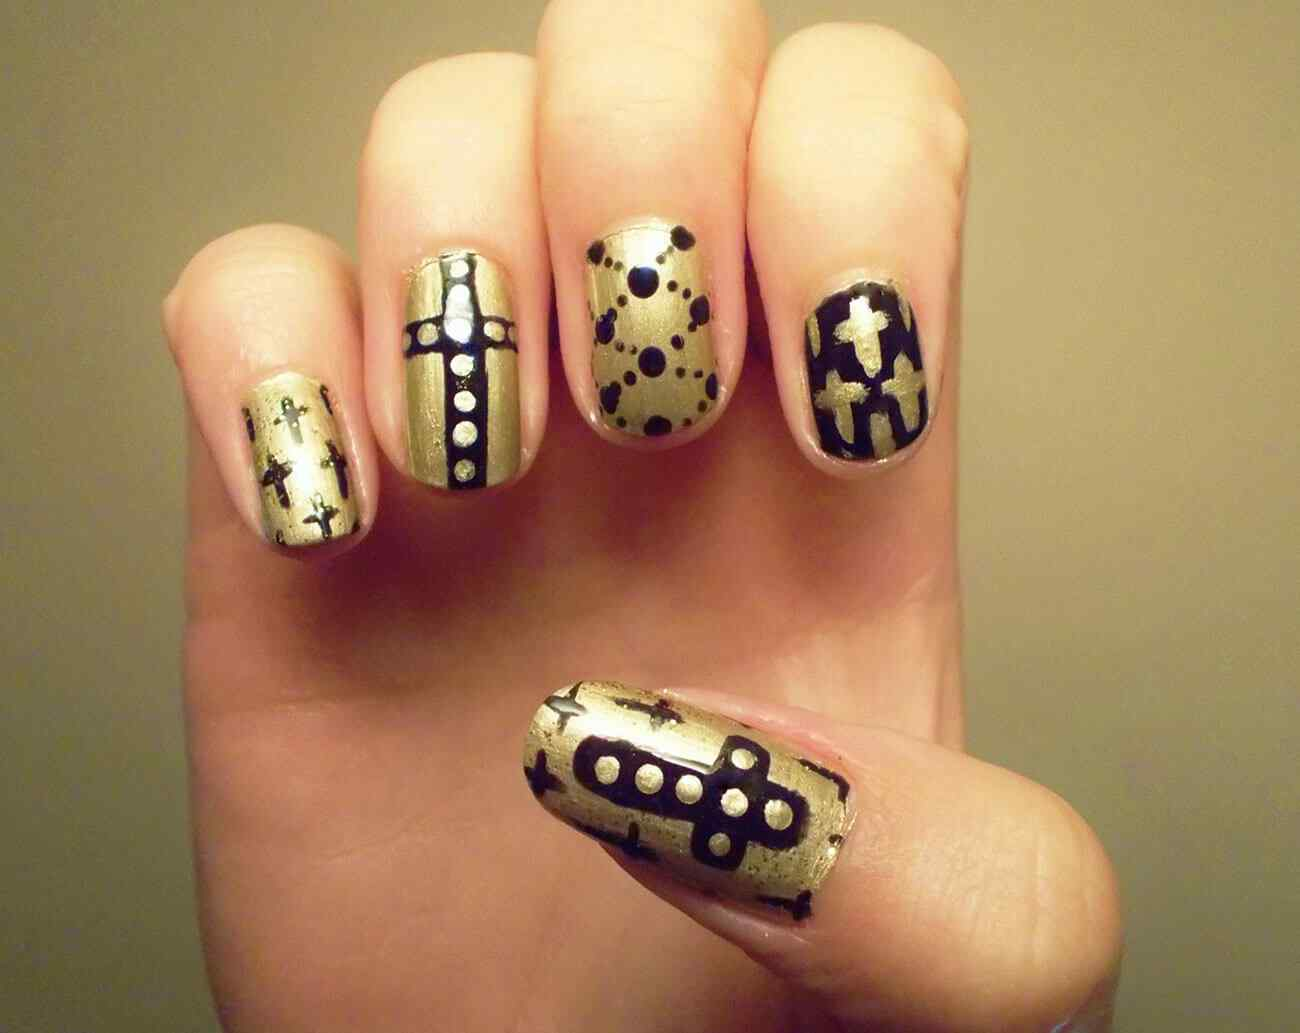 Stiletto nails with crosses